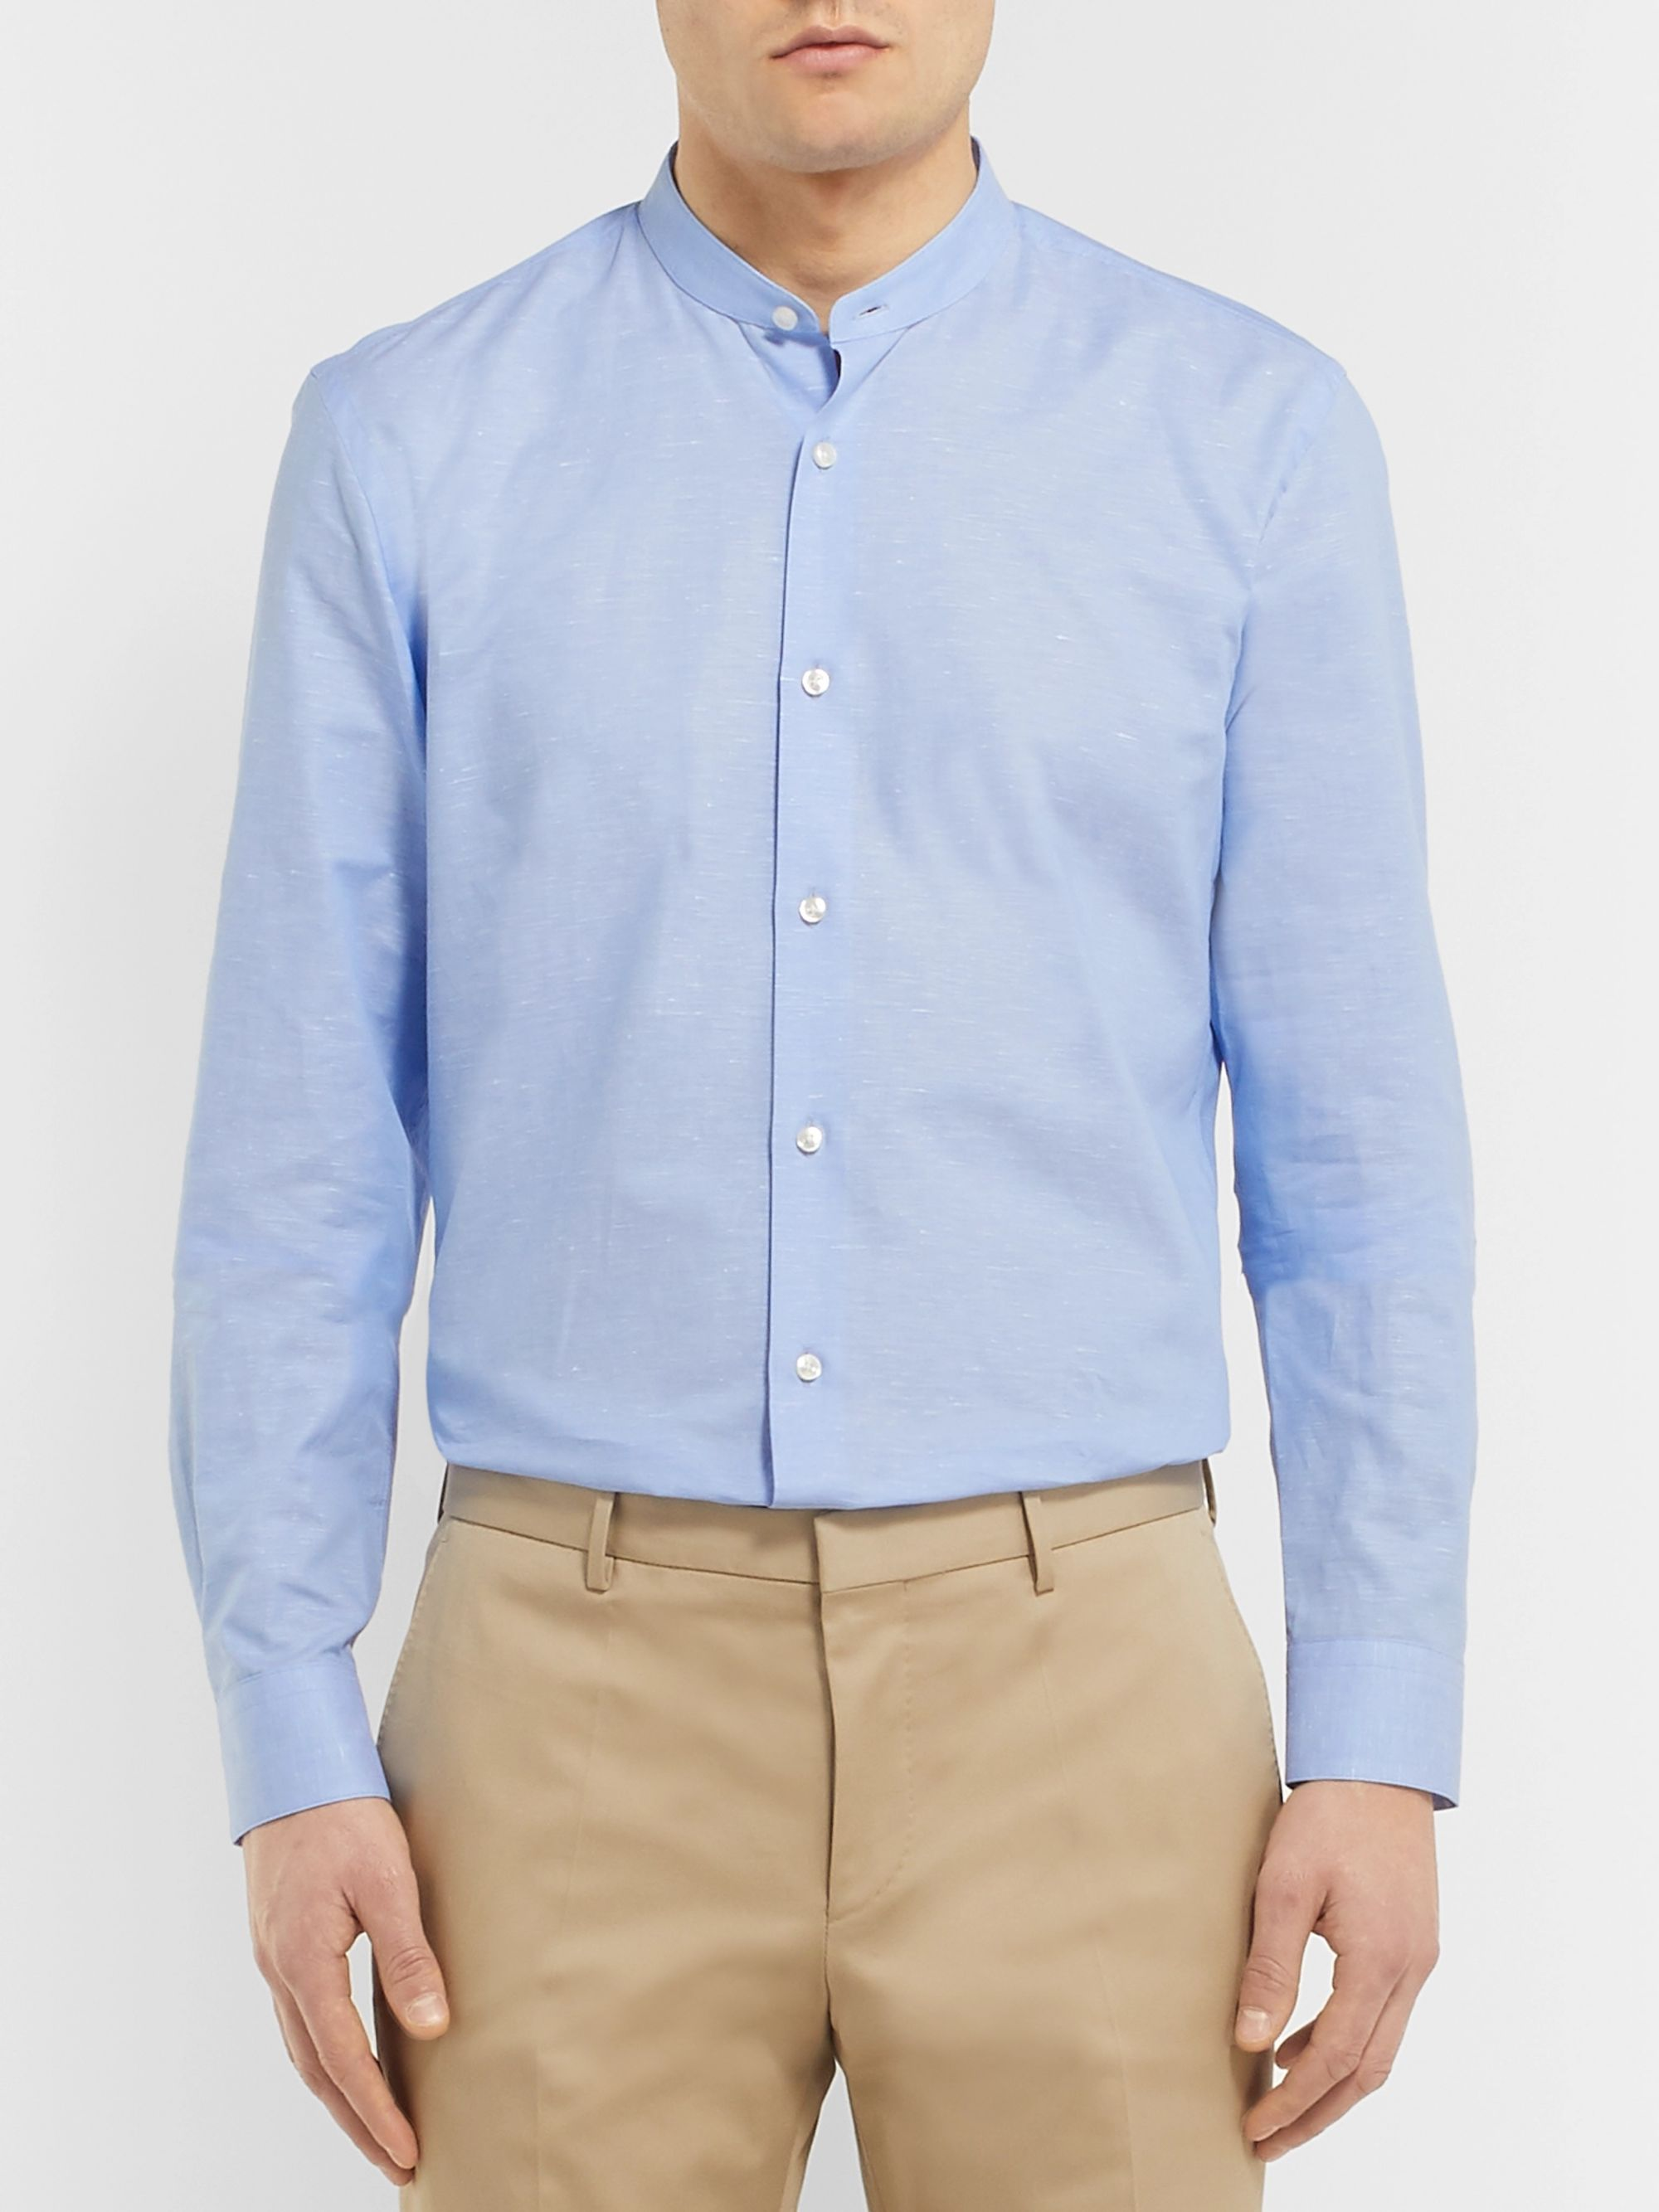 Hugo Boss White Slim-Fit Grandad-Collar Cotton and Linen-Blend Shirt